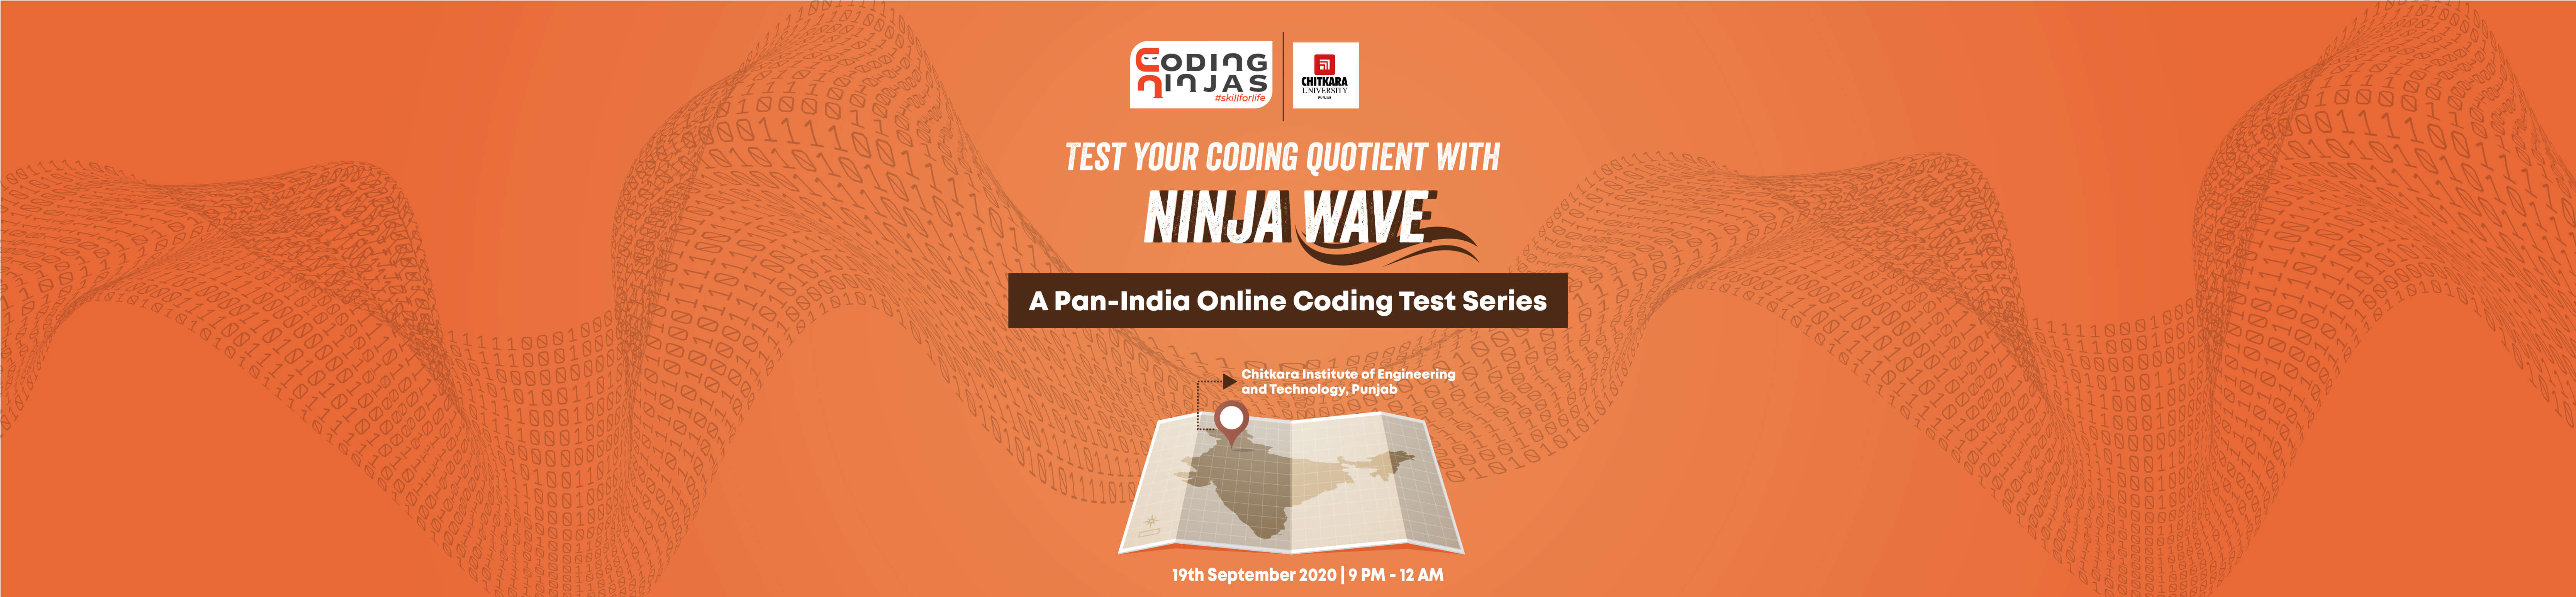 Ninja Wave at Chitkara Institute of Engineering and Technology, Punjab